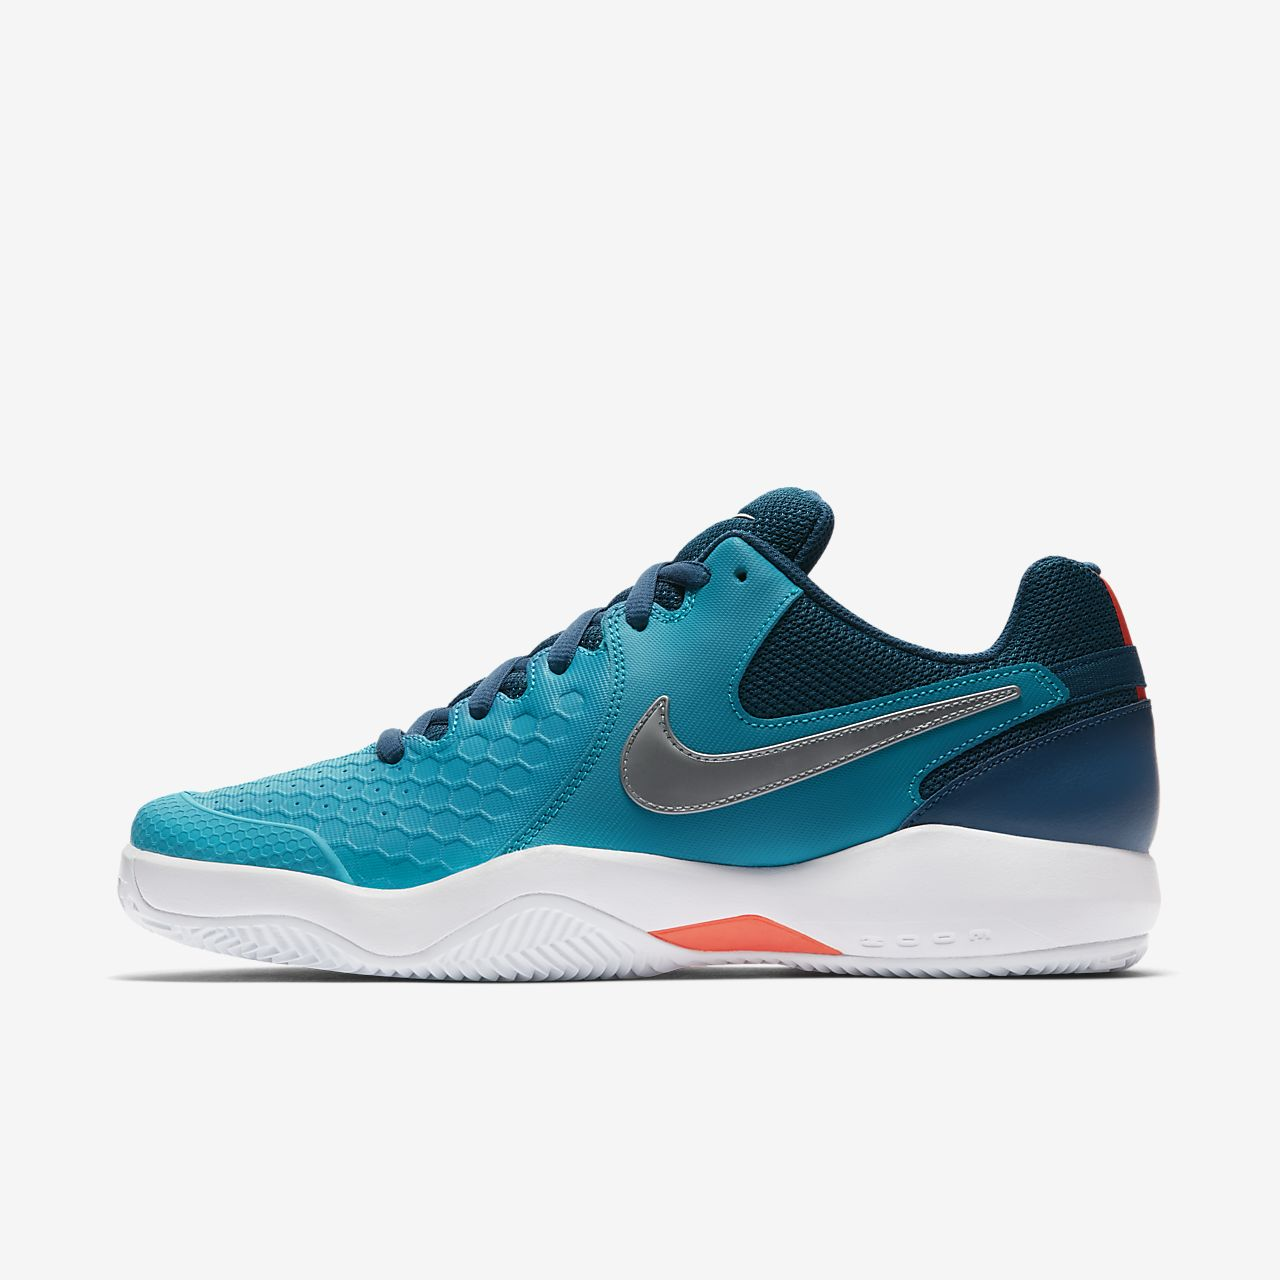 NikeCourt Air Zoom Resistance Neo Turquoise Hyper Crimson Blue Force Metallic Silver 922064400